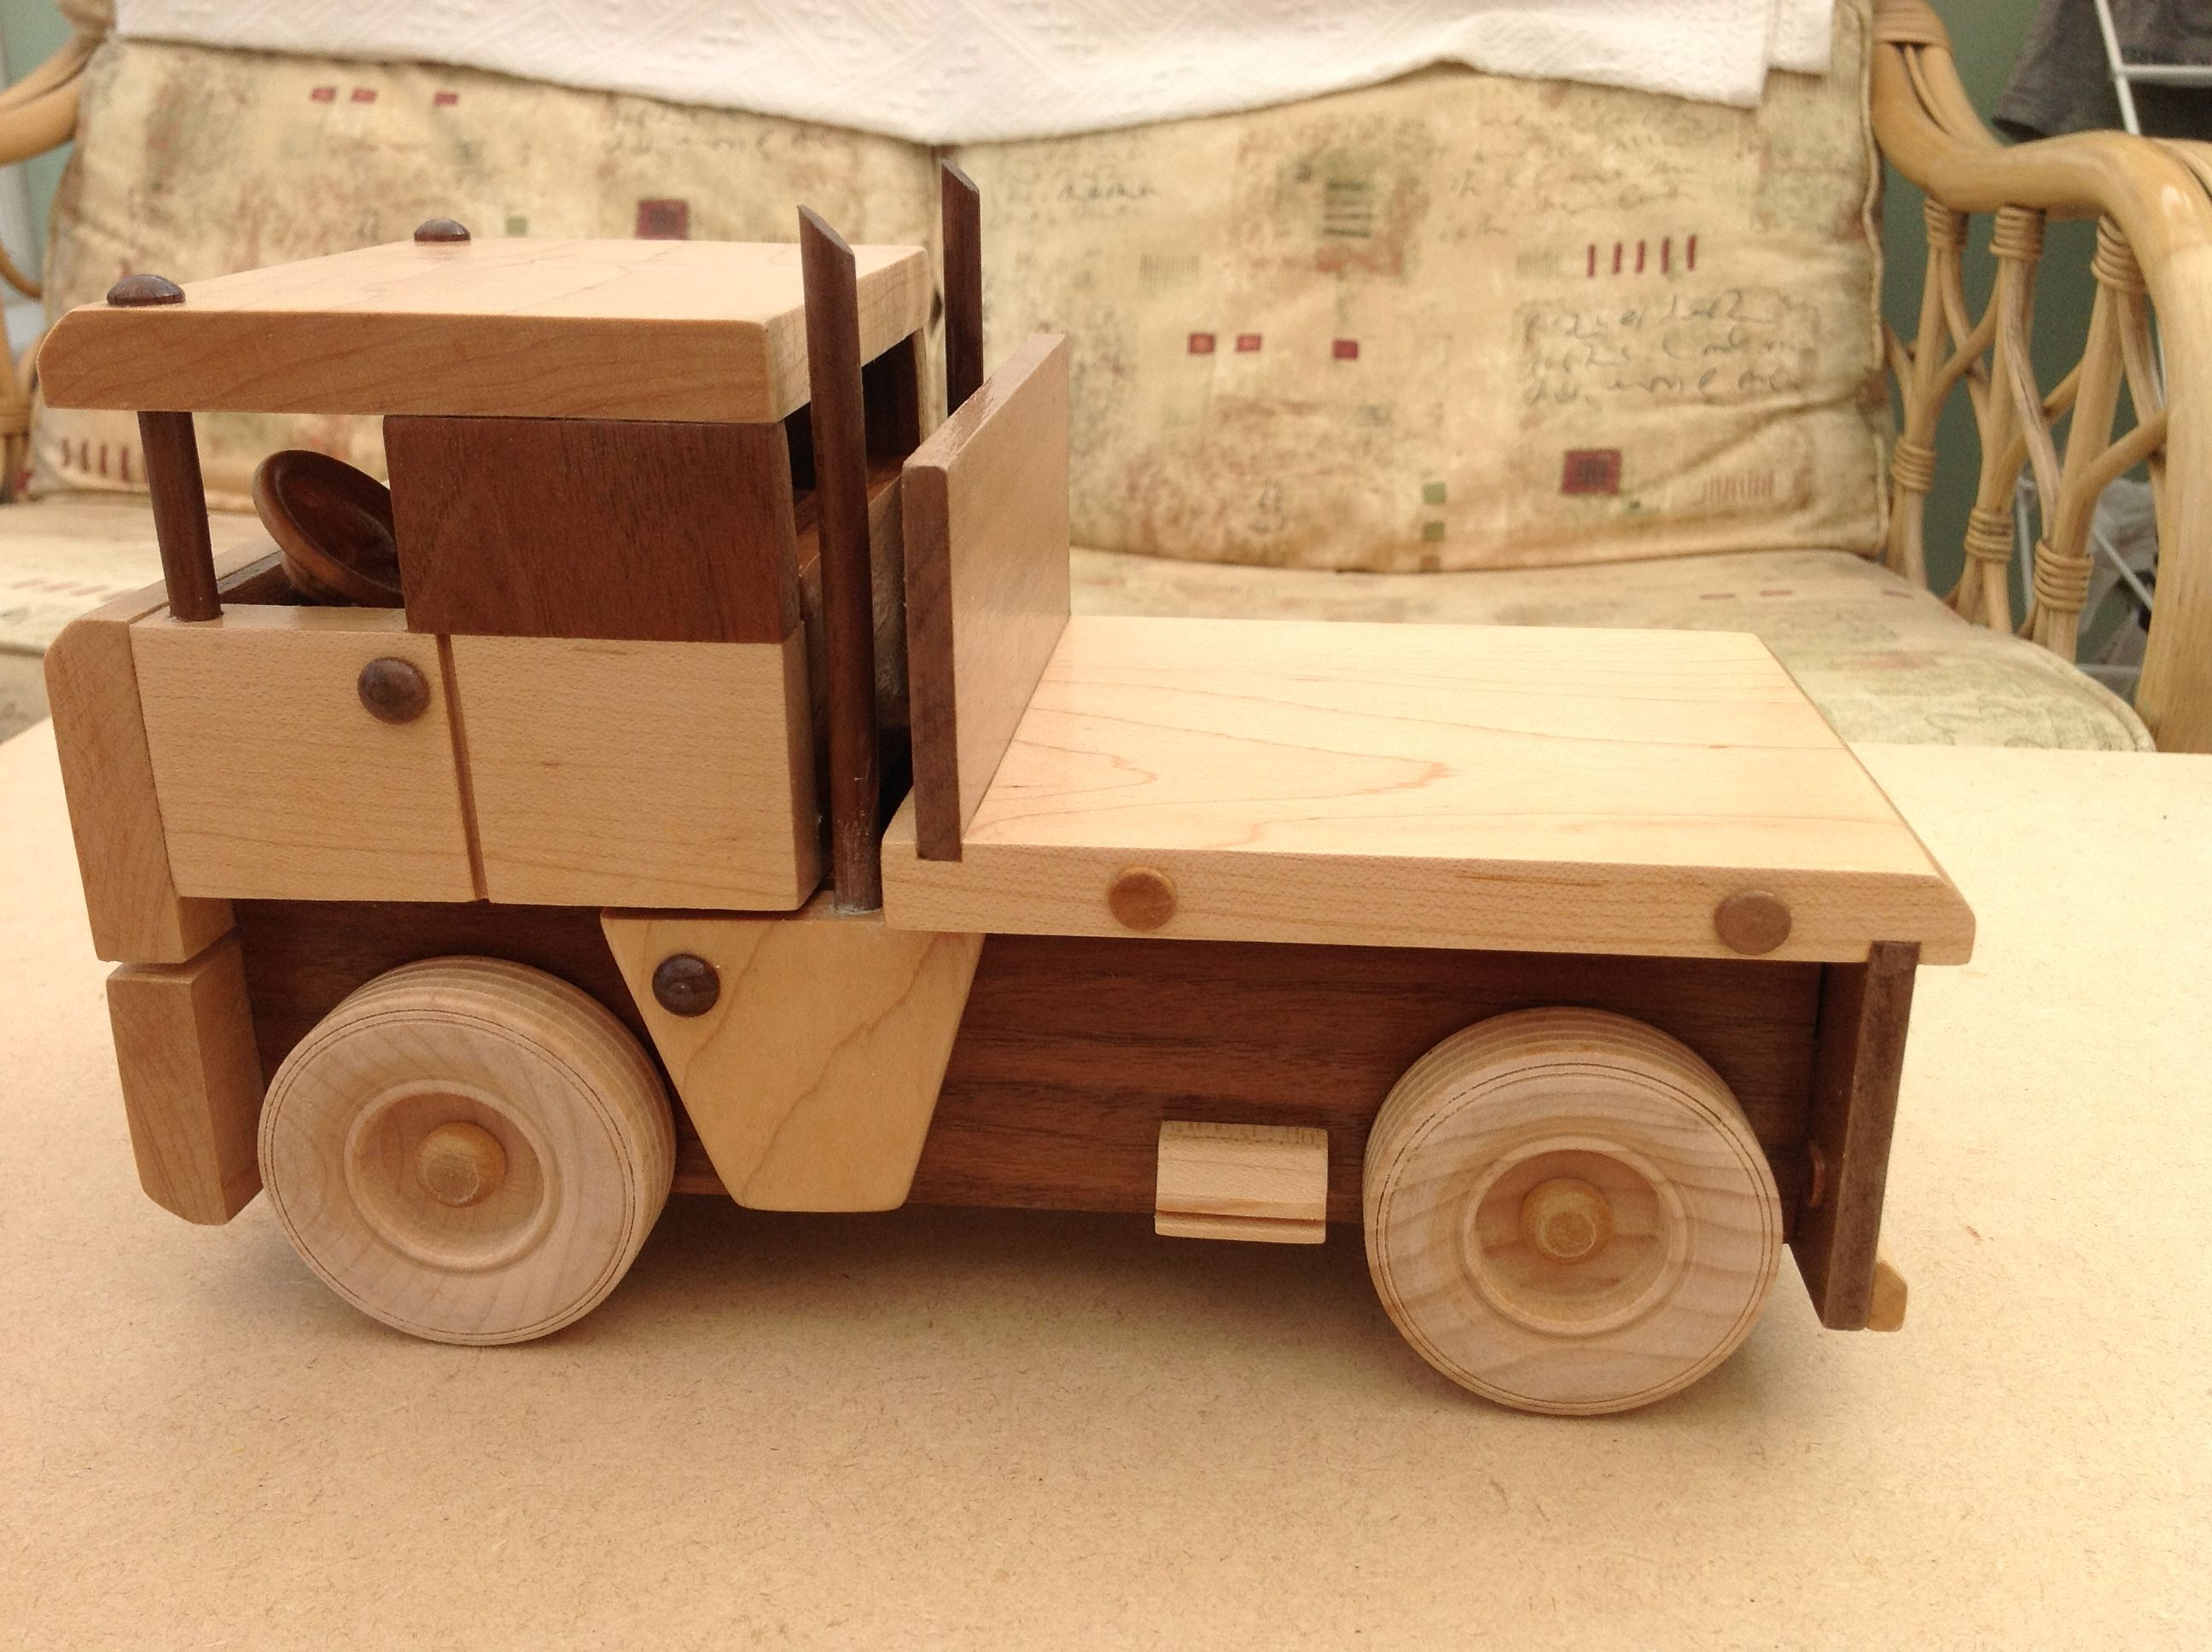 my handmade wooden truck maded french, swindon england